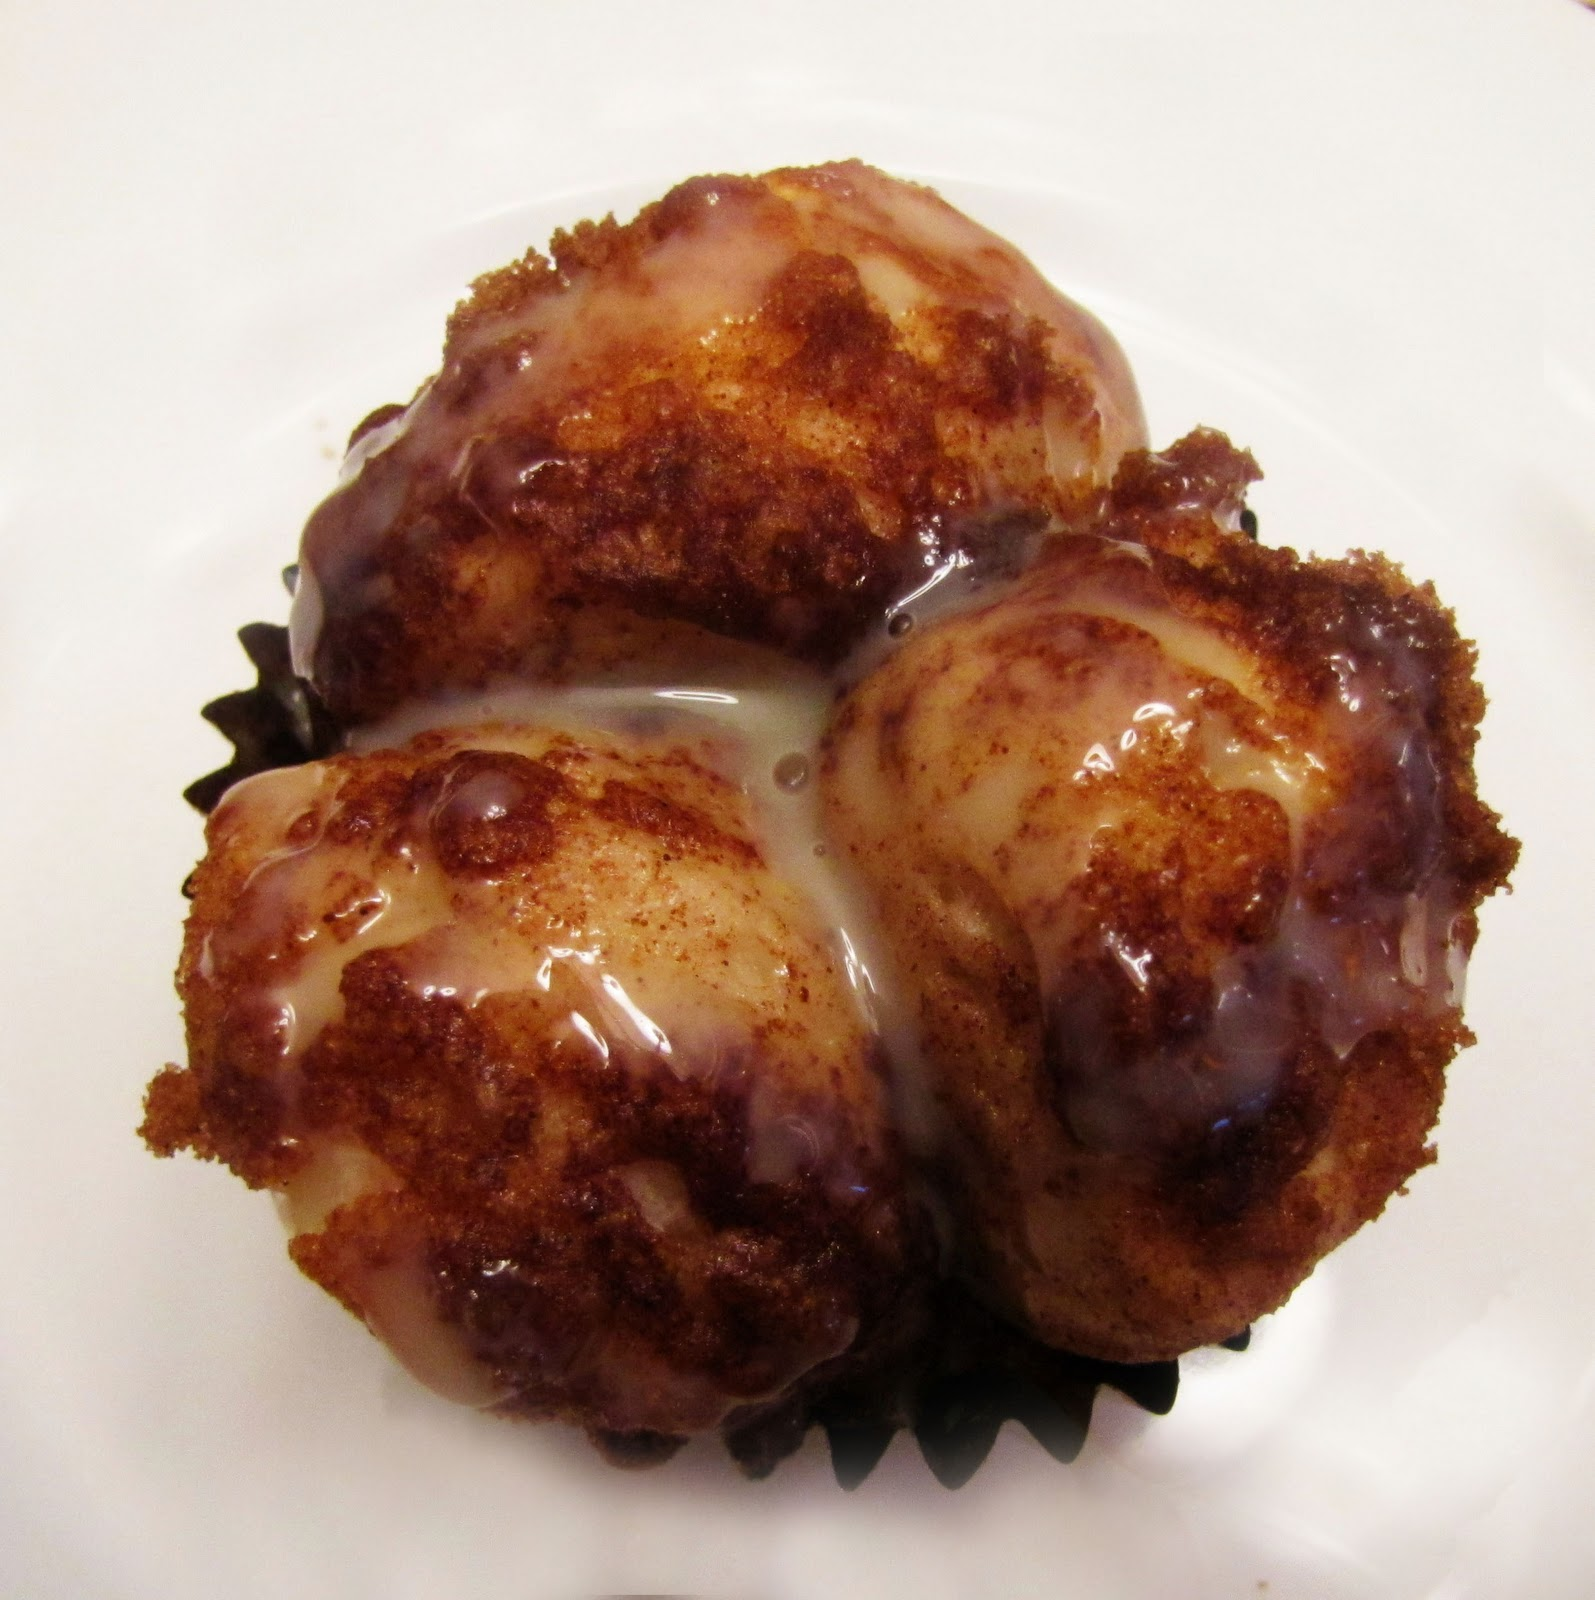 Rumbly in my Tumbly: Monkey Muffins